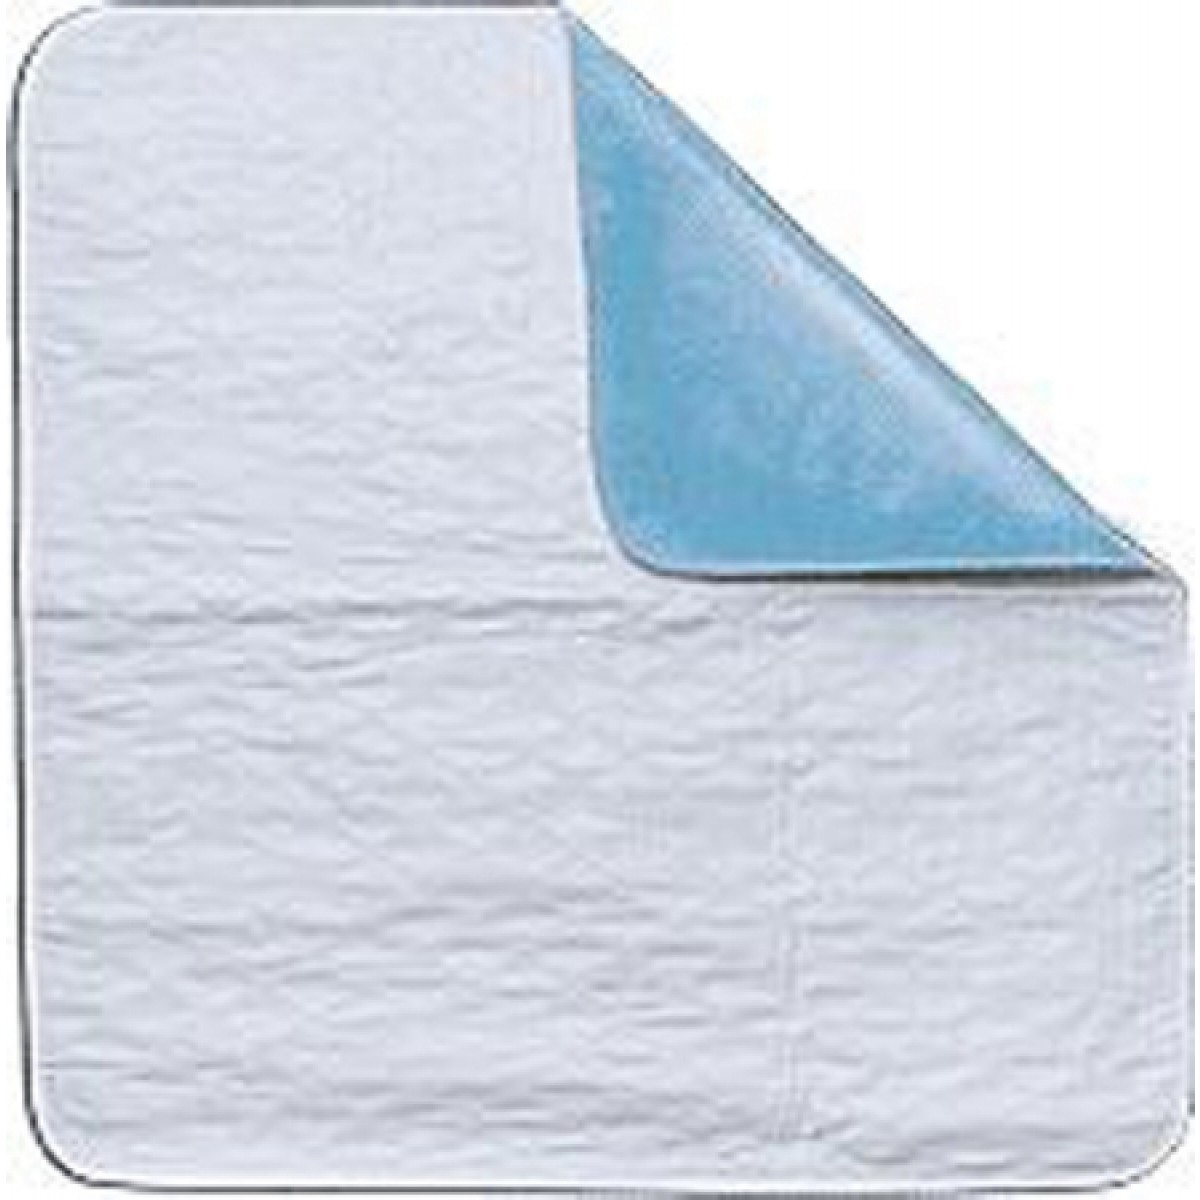 ReliaMed Reusable Underpads, Polyester, ZRUP3654R-CS10, 10 Count